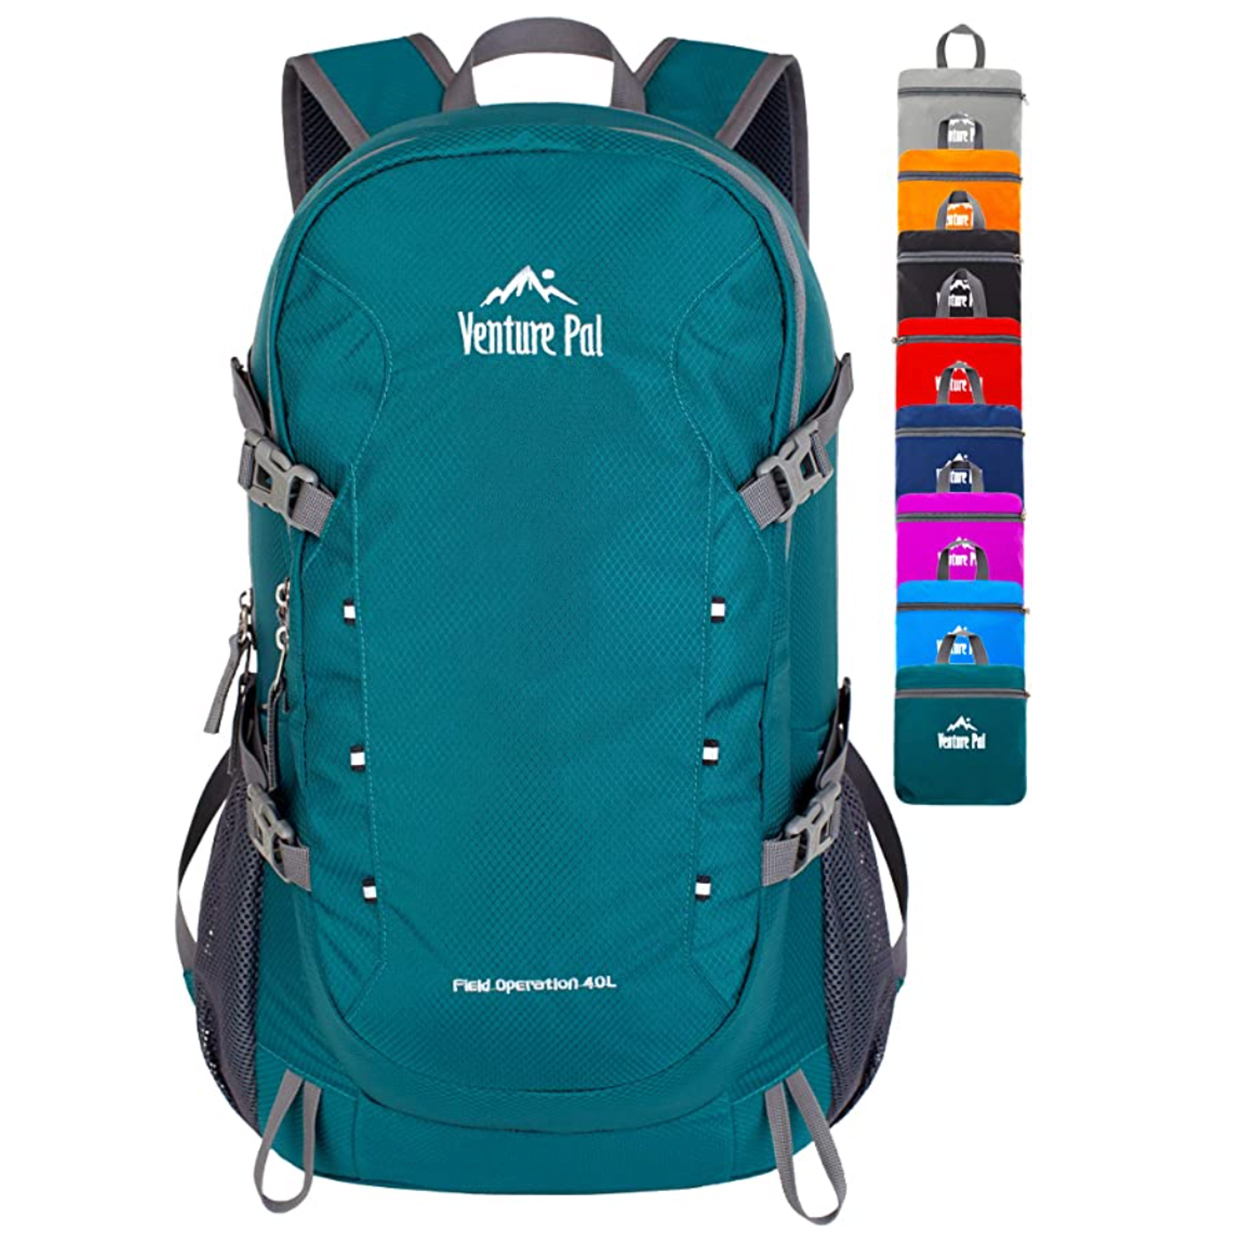 Turquoise Venture Pal Lightweight Packable Travel Hiking Backpack